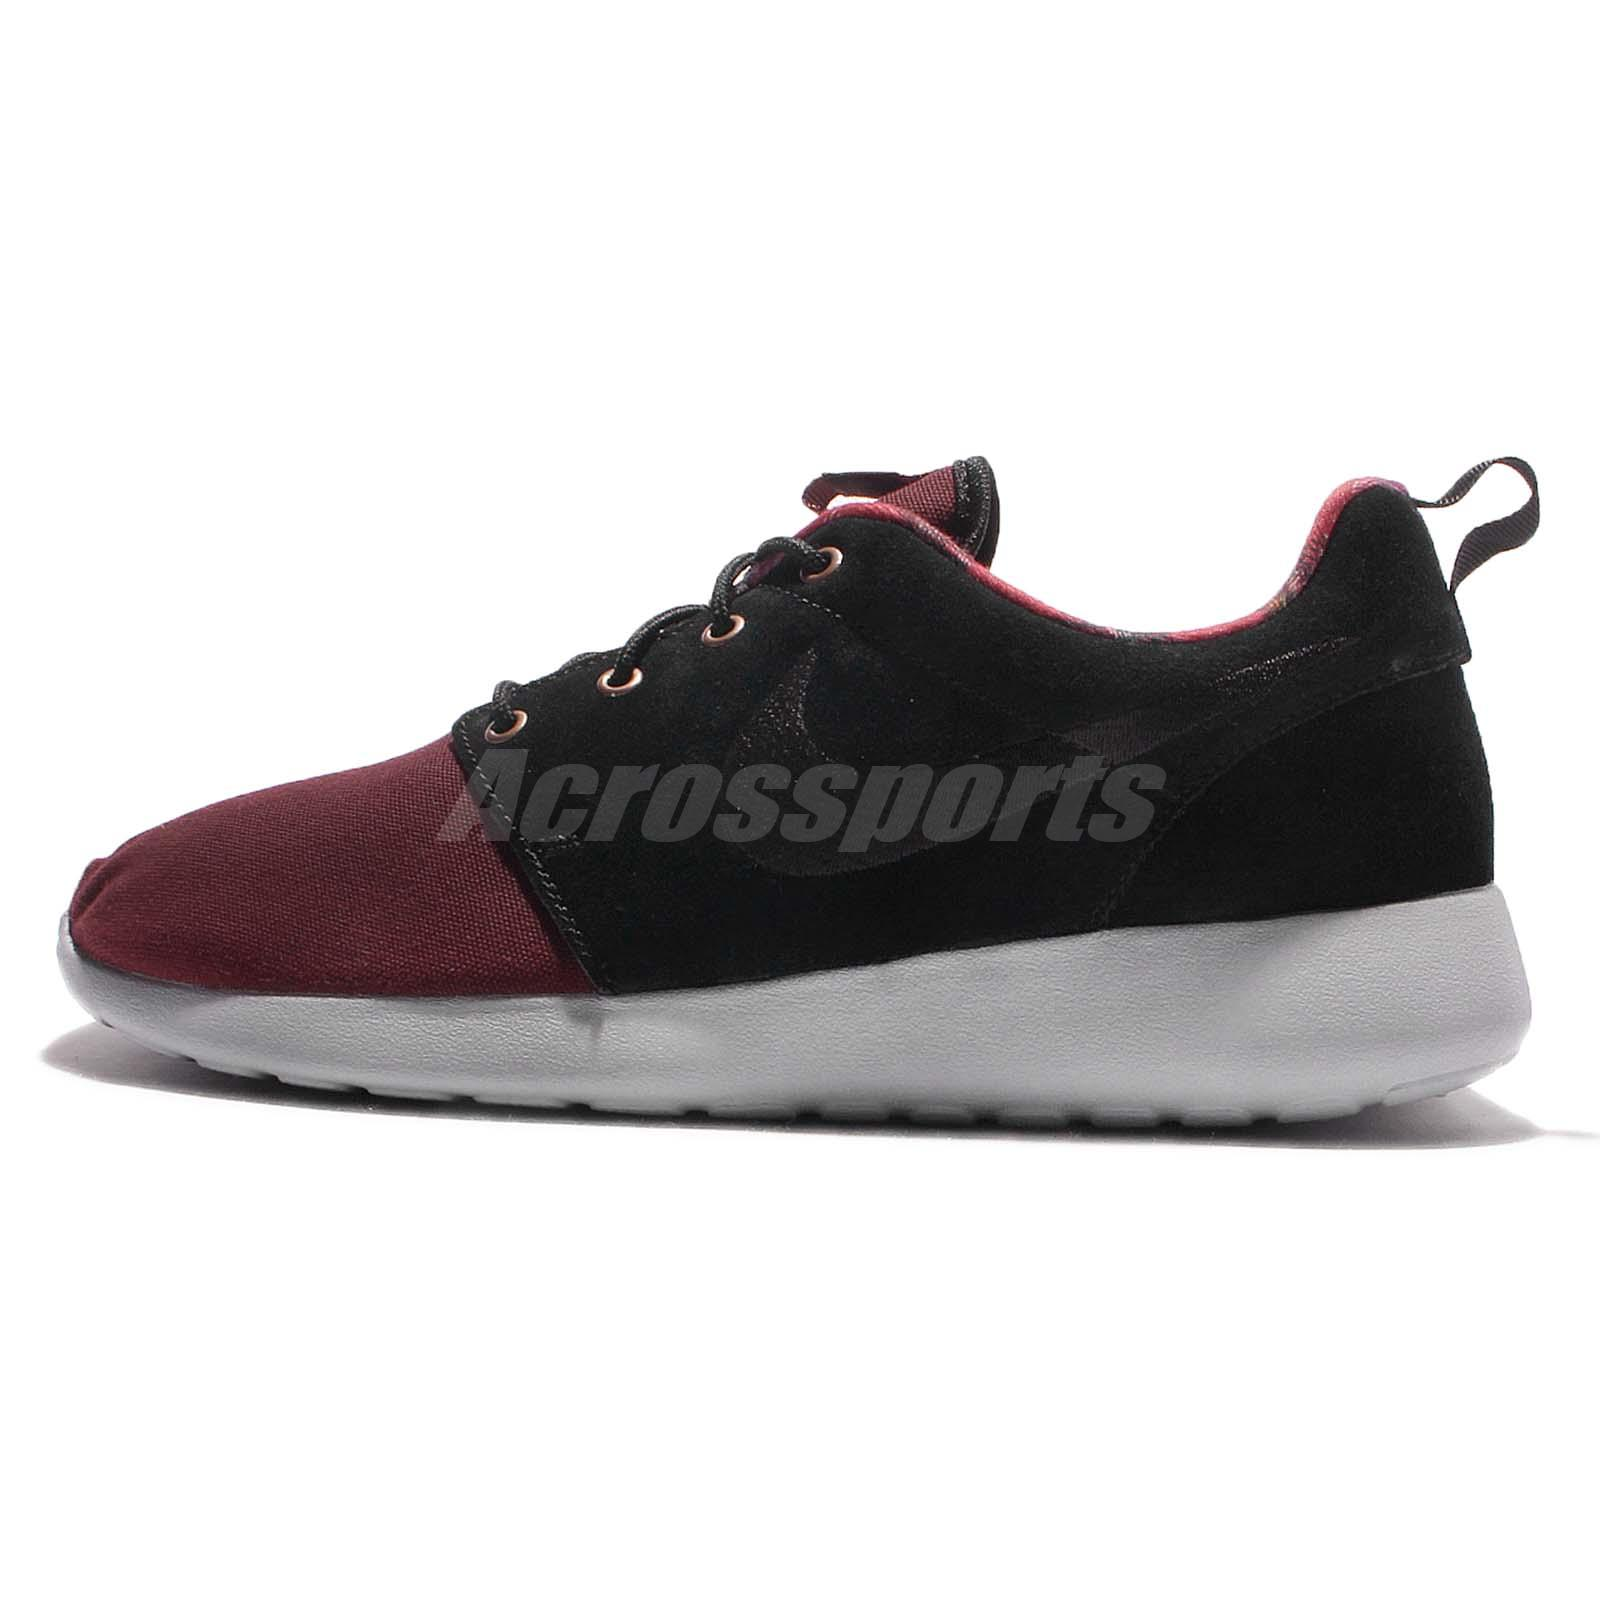 d1c4d59e71fb1 ... new zealand nike roshe one premium rosherun night maroon black men  running shoes 525234 602 7fc71